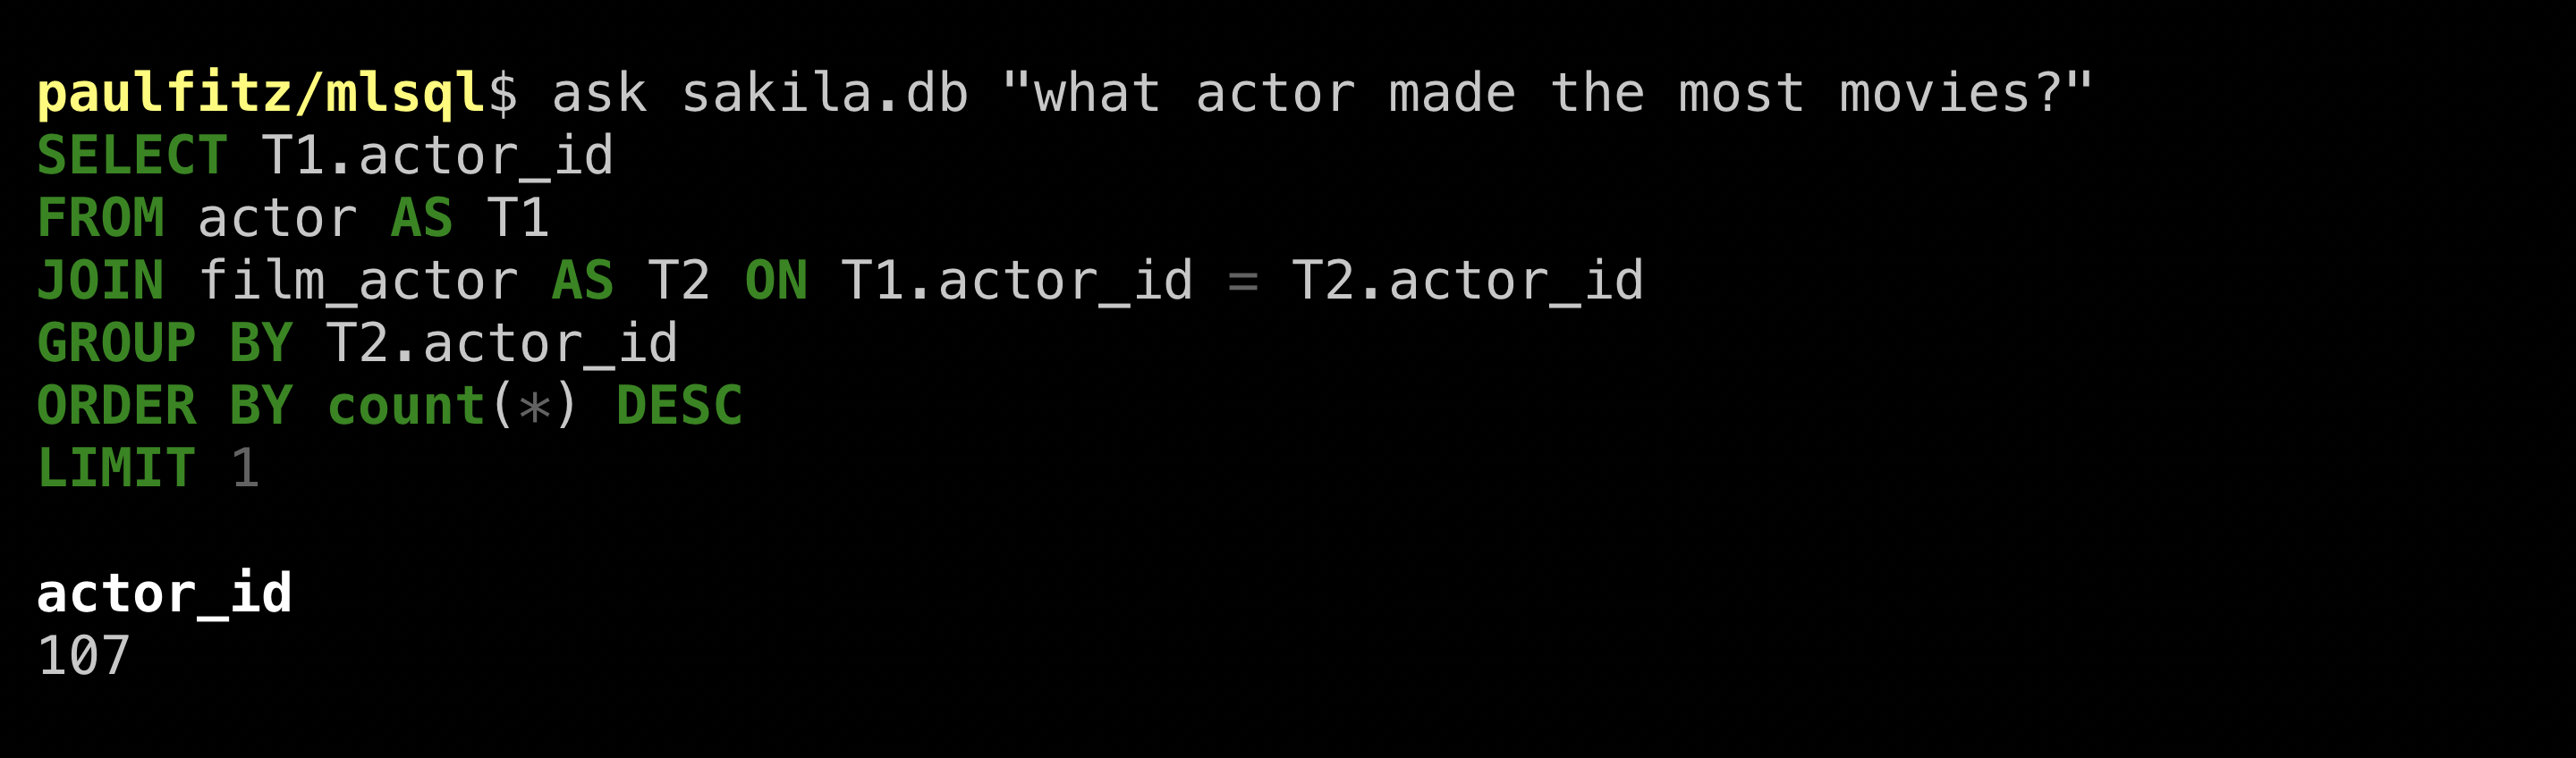 machine query for acting-est actor